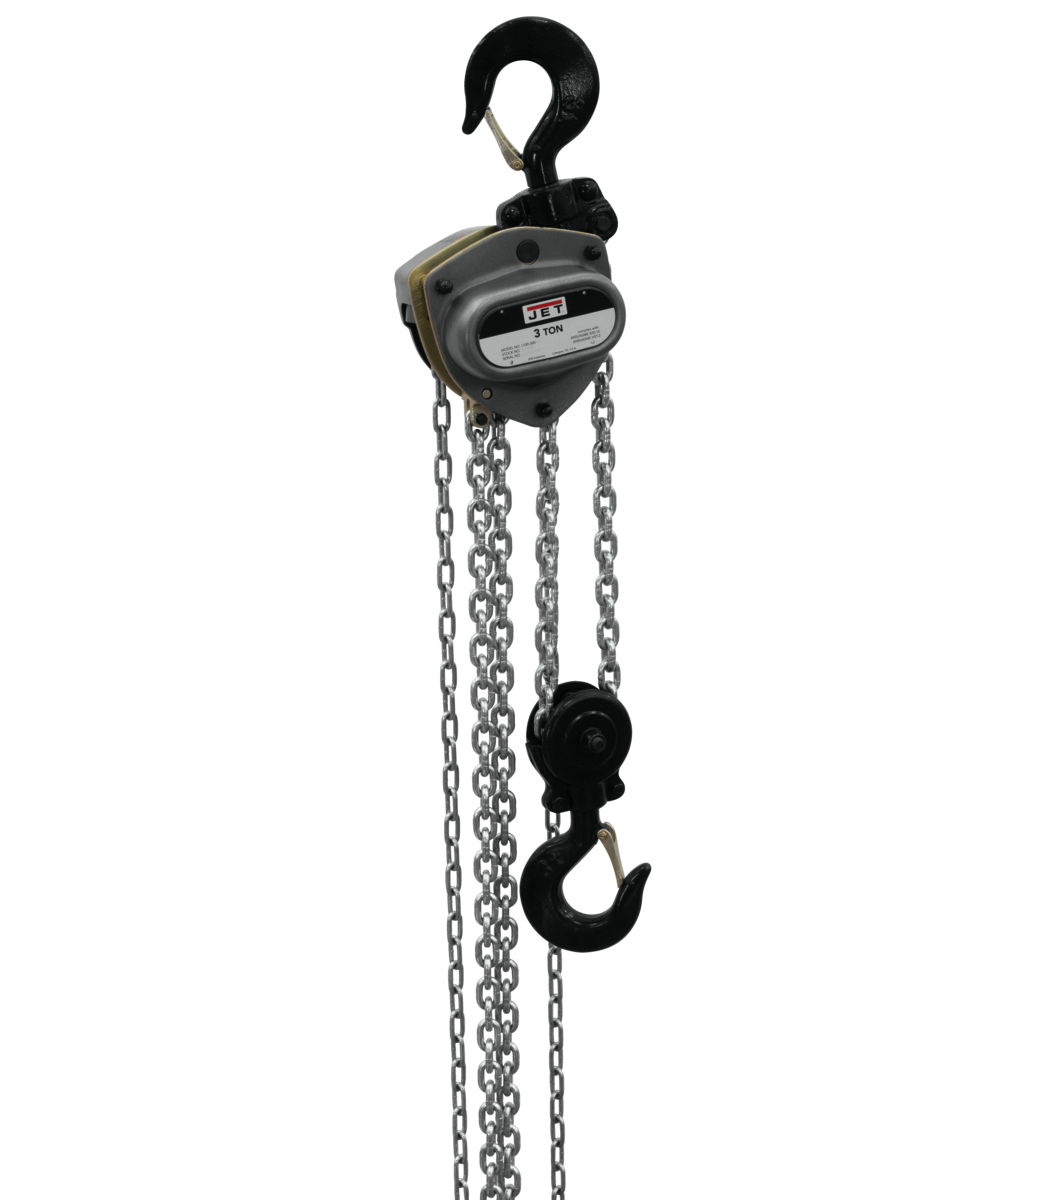 L-100-300WO-15, 3-Ton Hand Chain Hoist With 15' Lift & Overload Protection